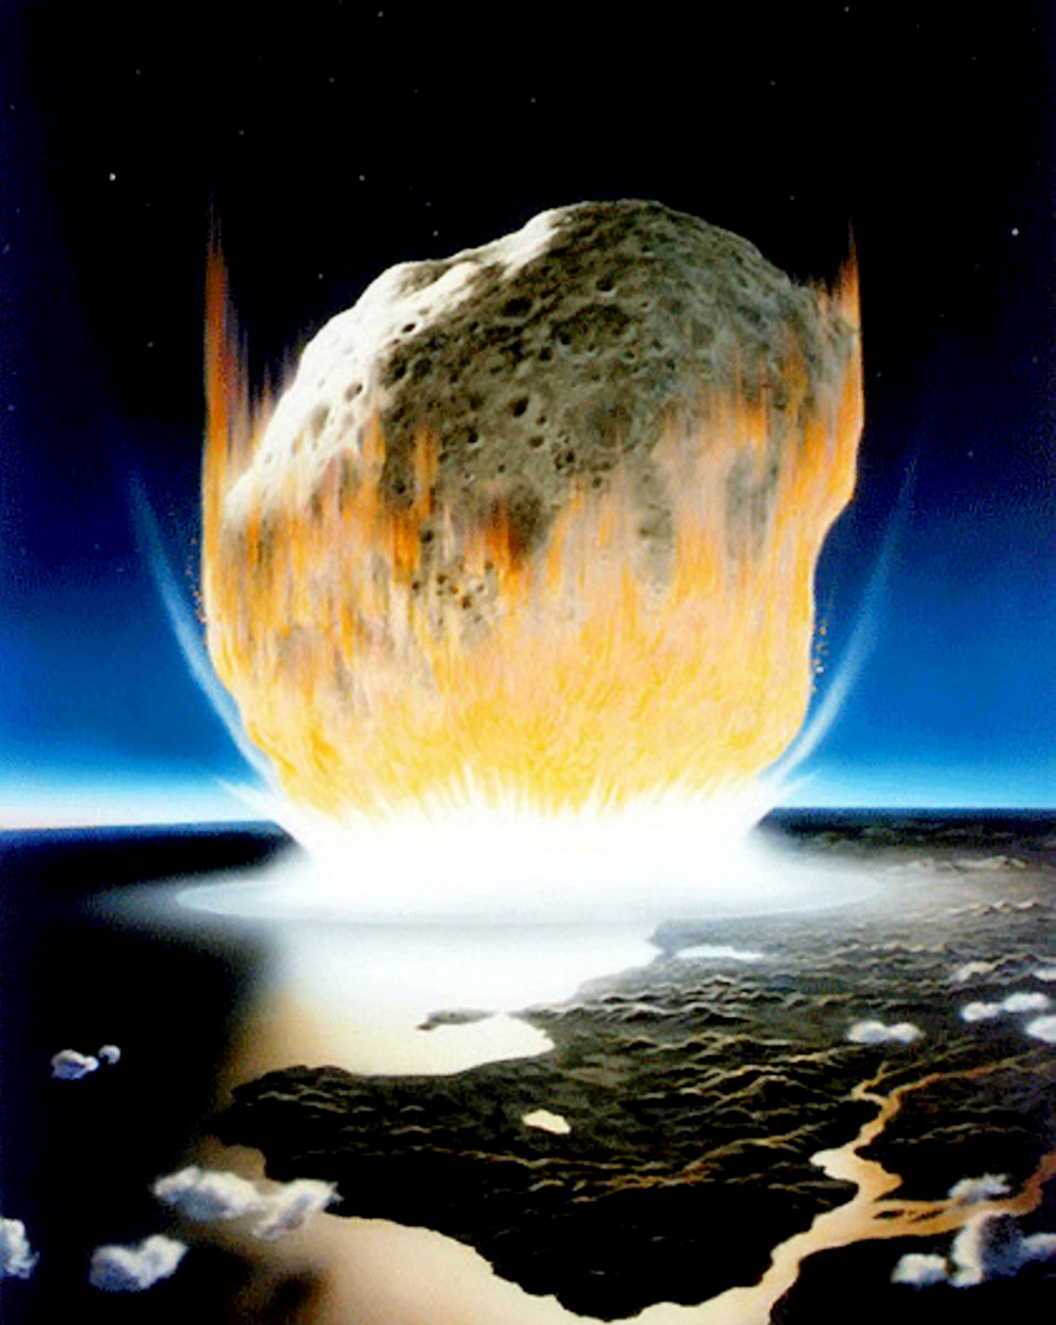 Asteroid that wiped out dinosaurs turned oceans into acid, shocking study says